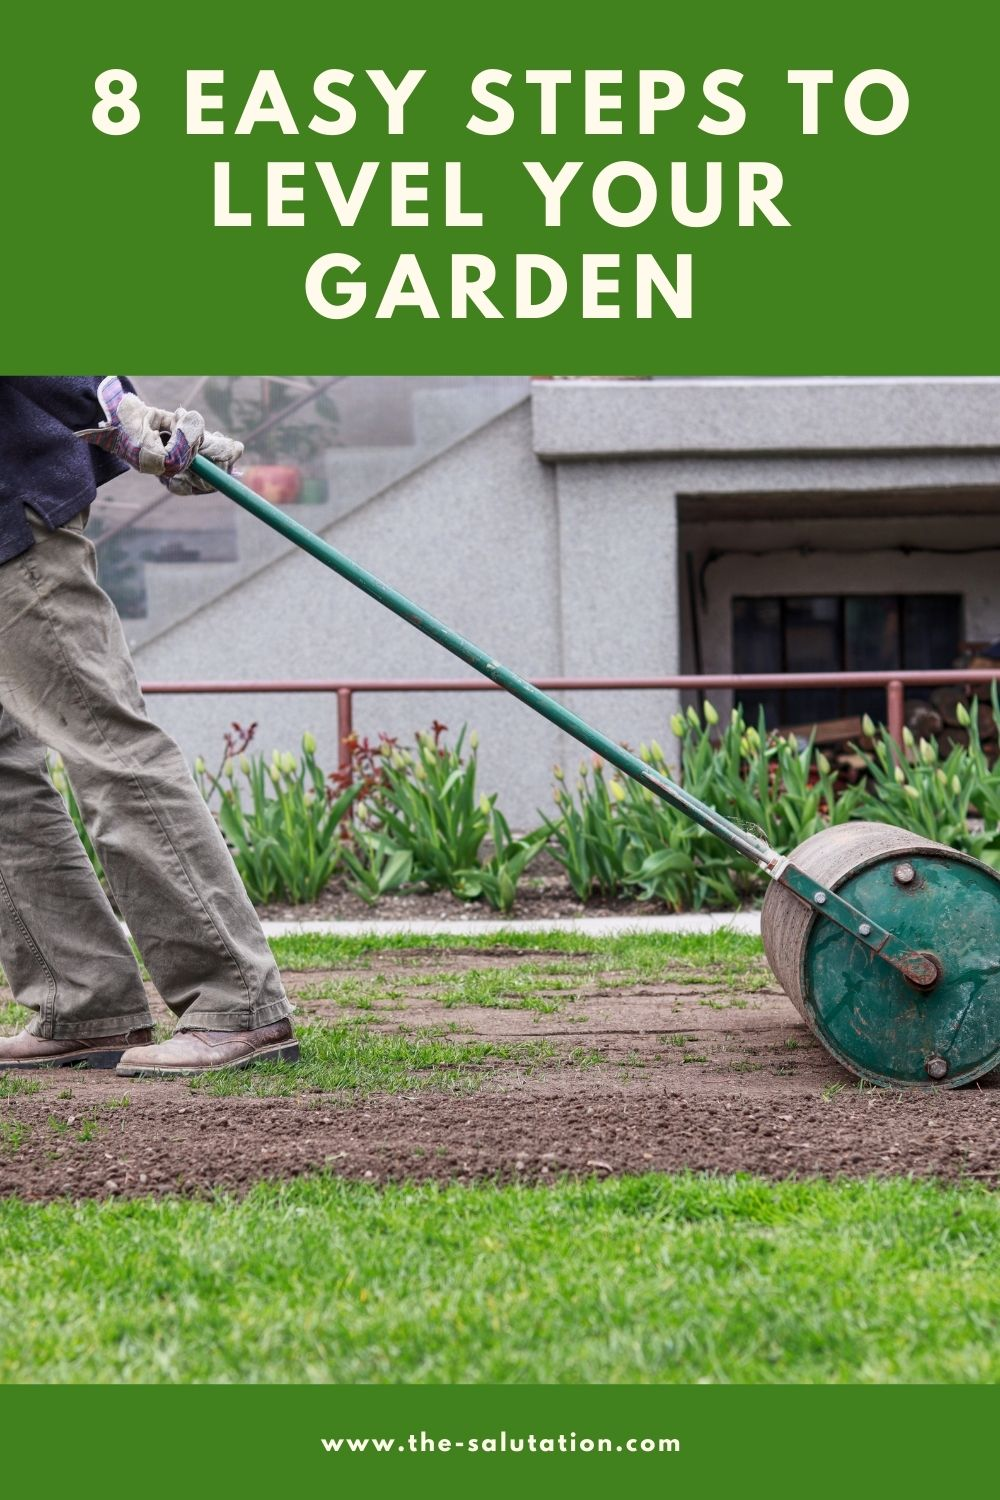 8 Easy Steps to Level Your Garden 2